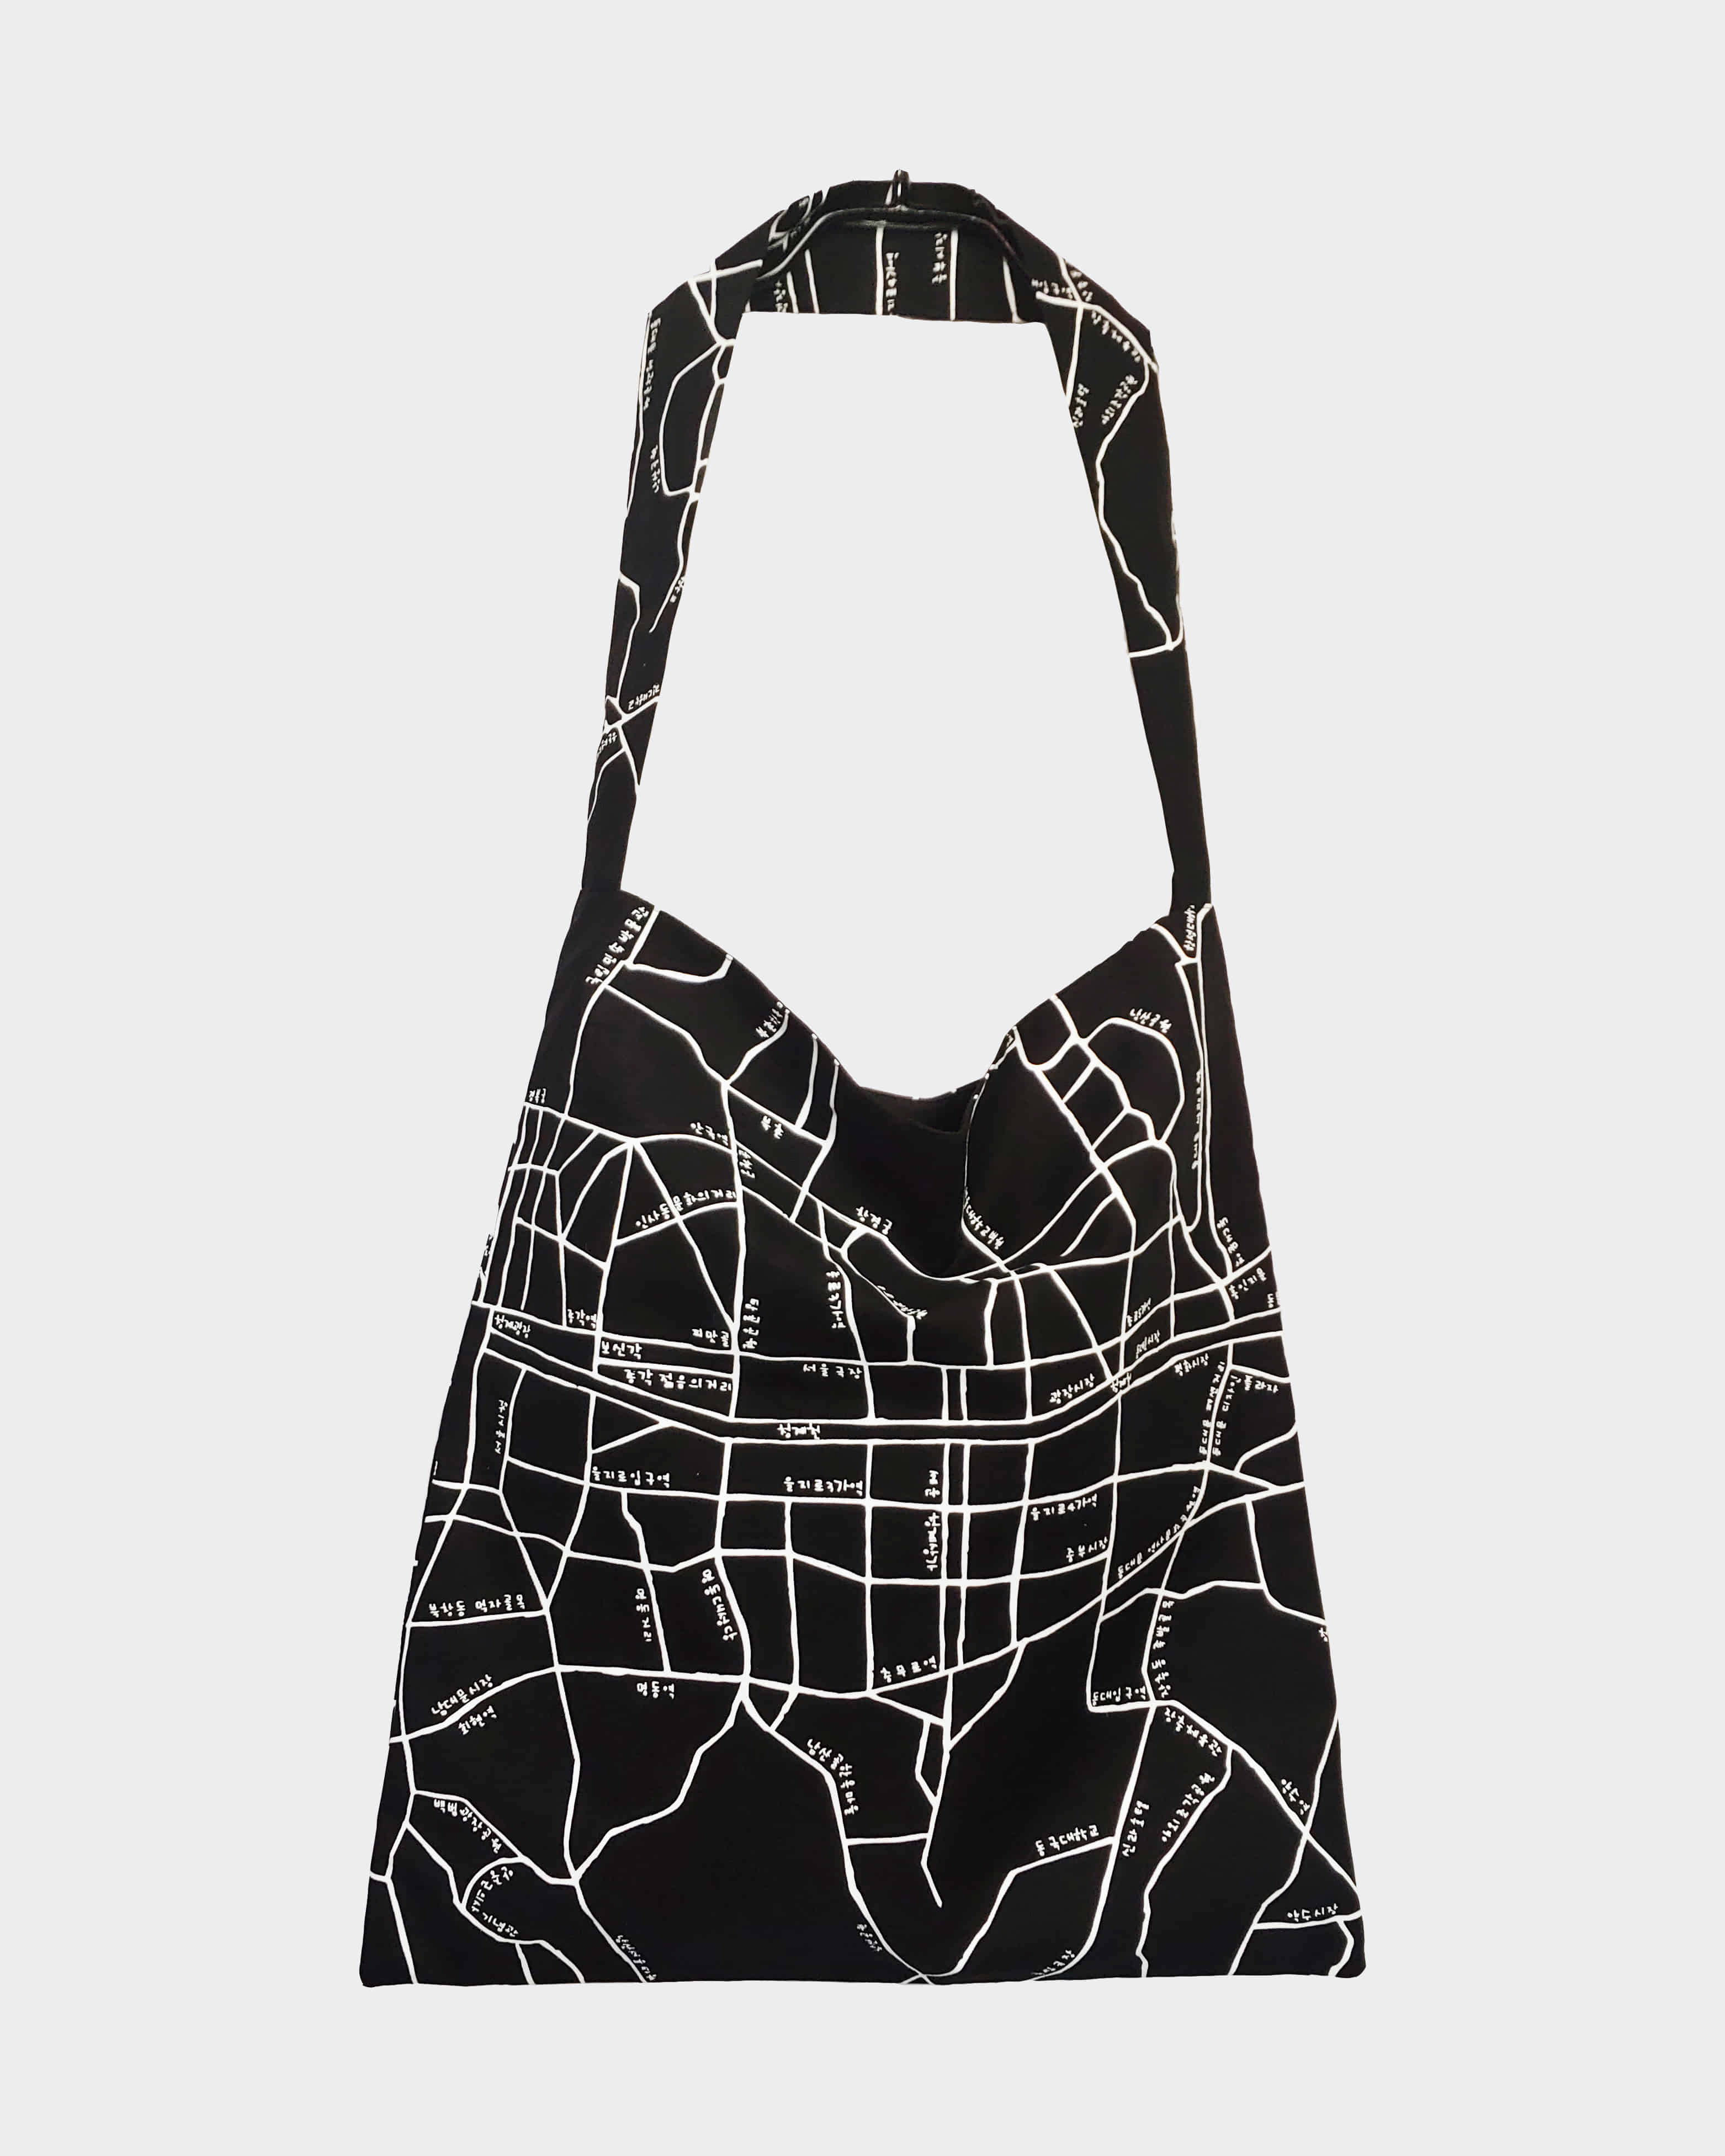 서울지도 에코백 Seoul map ecobag (Black)